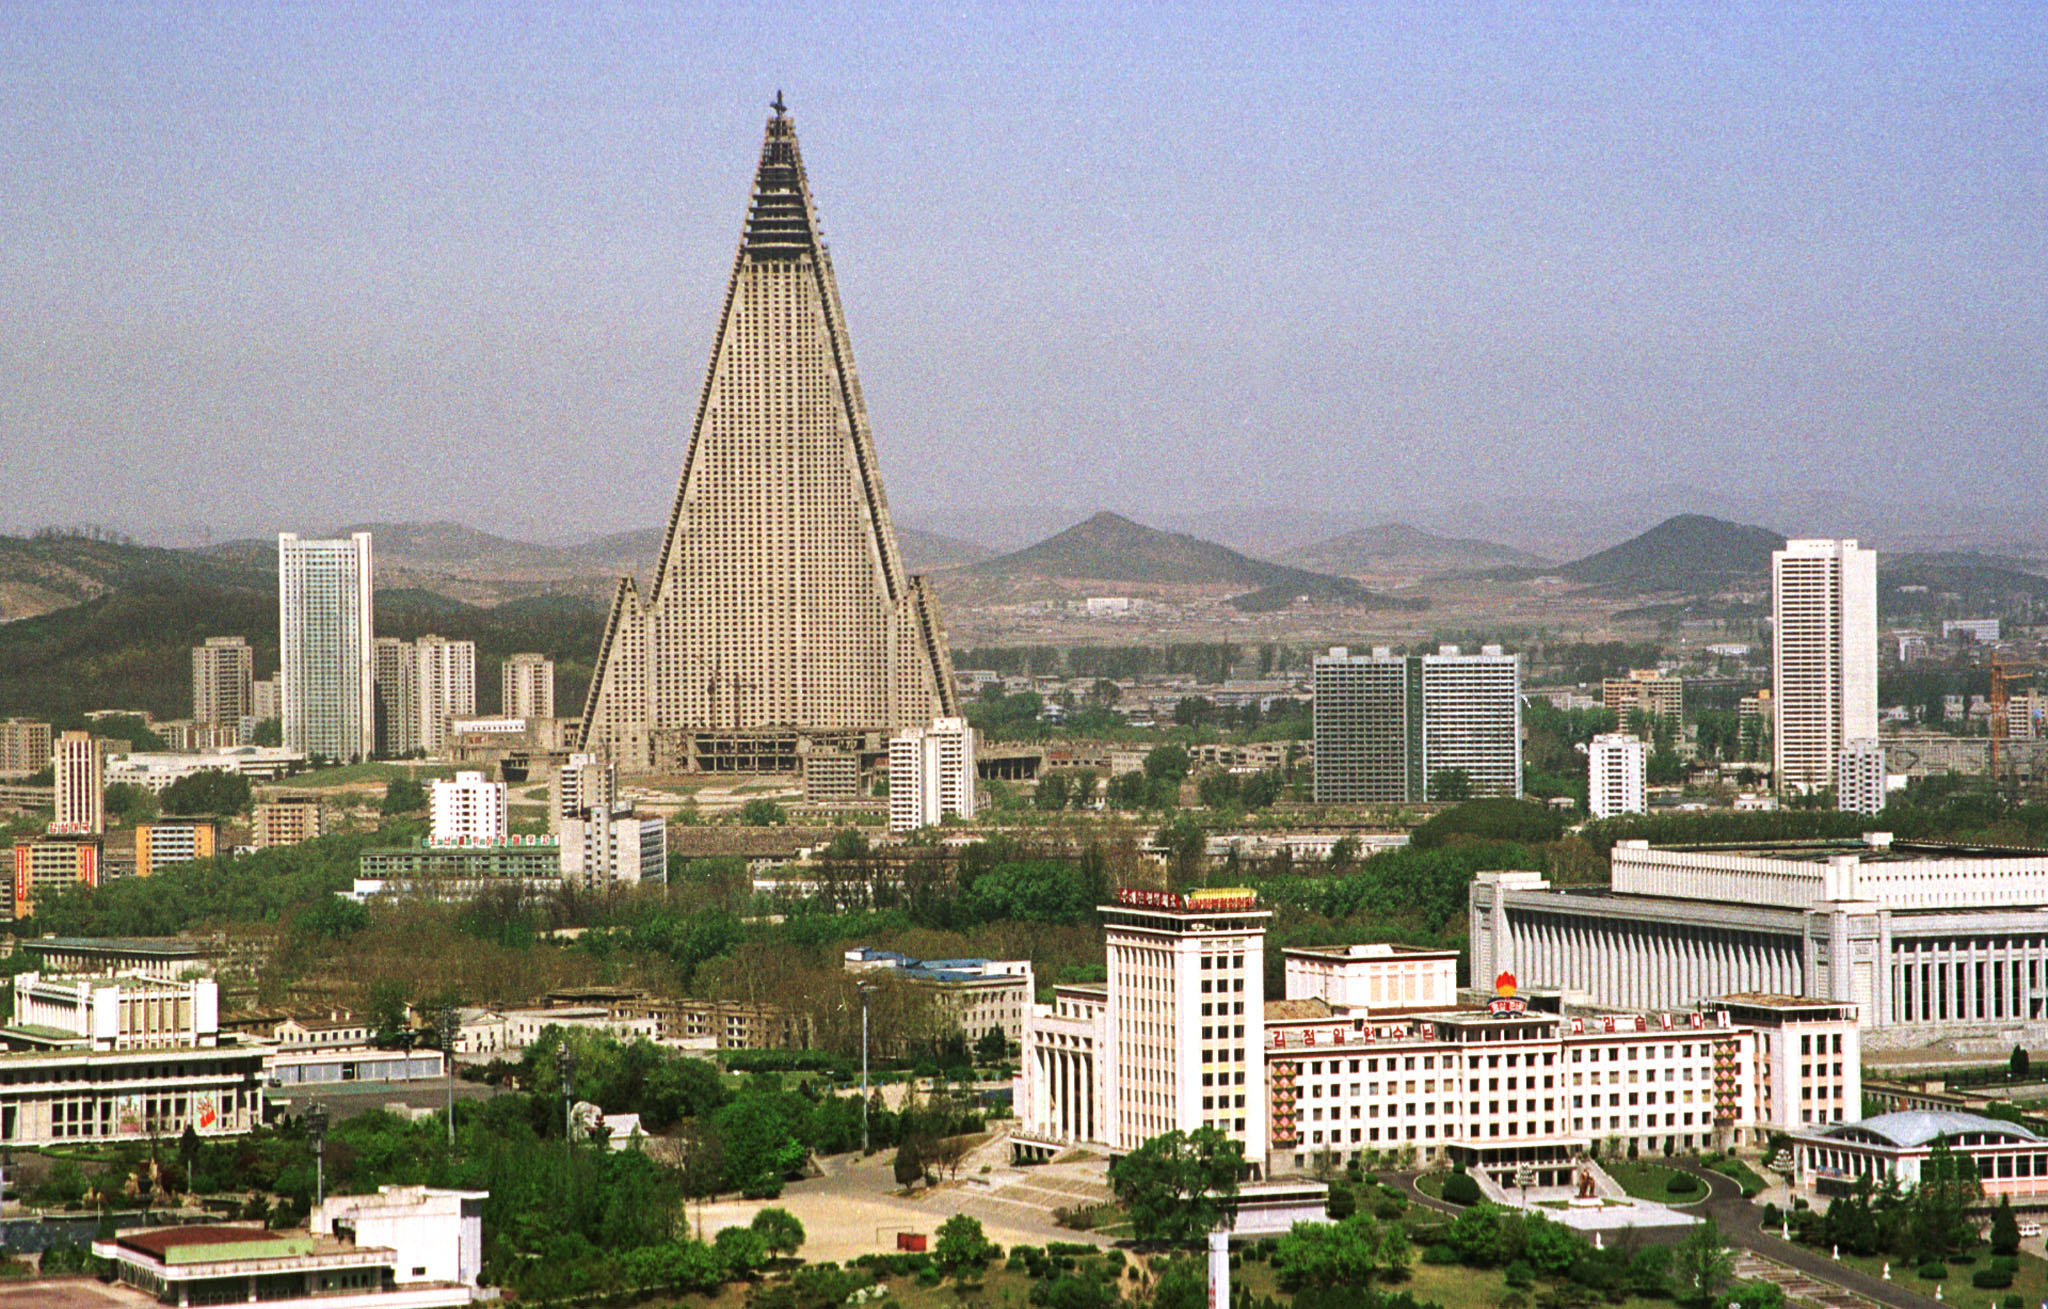 The 105-storey Ryugyong Hotel splits the sky over Pyongyang, the North Korean capital. The picture of a crane sitting idle on top of the hotel has become a familiar one for locals, unchanged for over a decade. The partially complete building now stands tall, but without windows or visitors. Picture taken April 24, 2002. REUTERS/Teruaki Ueno TO ACCOMPANY FEATURE STORY KOREA-NORTH-ECONOMY  ES/RCS - RP3DRICANDAA